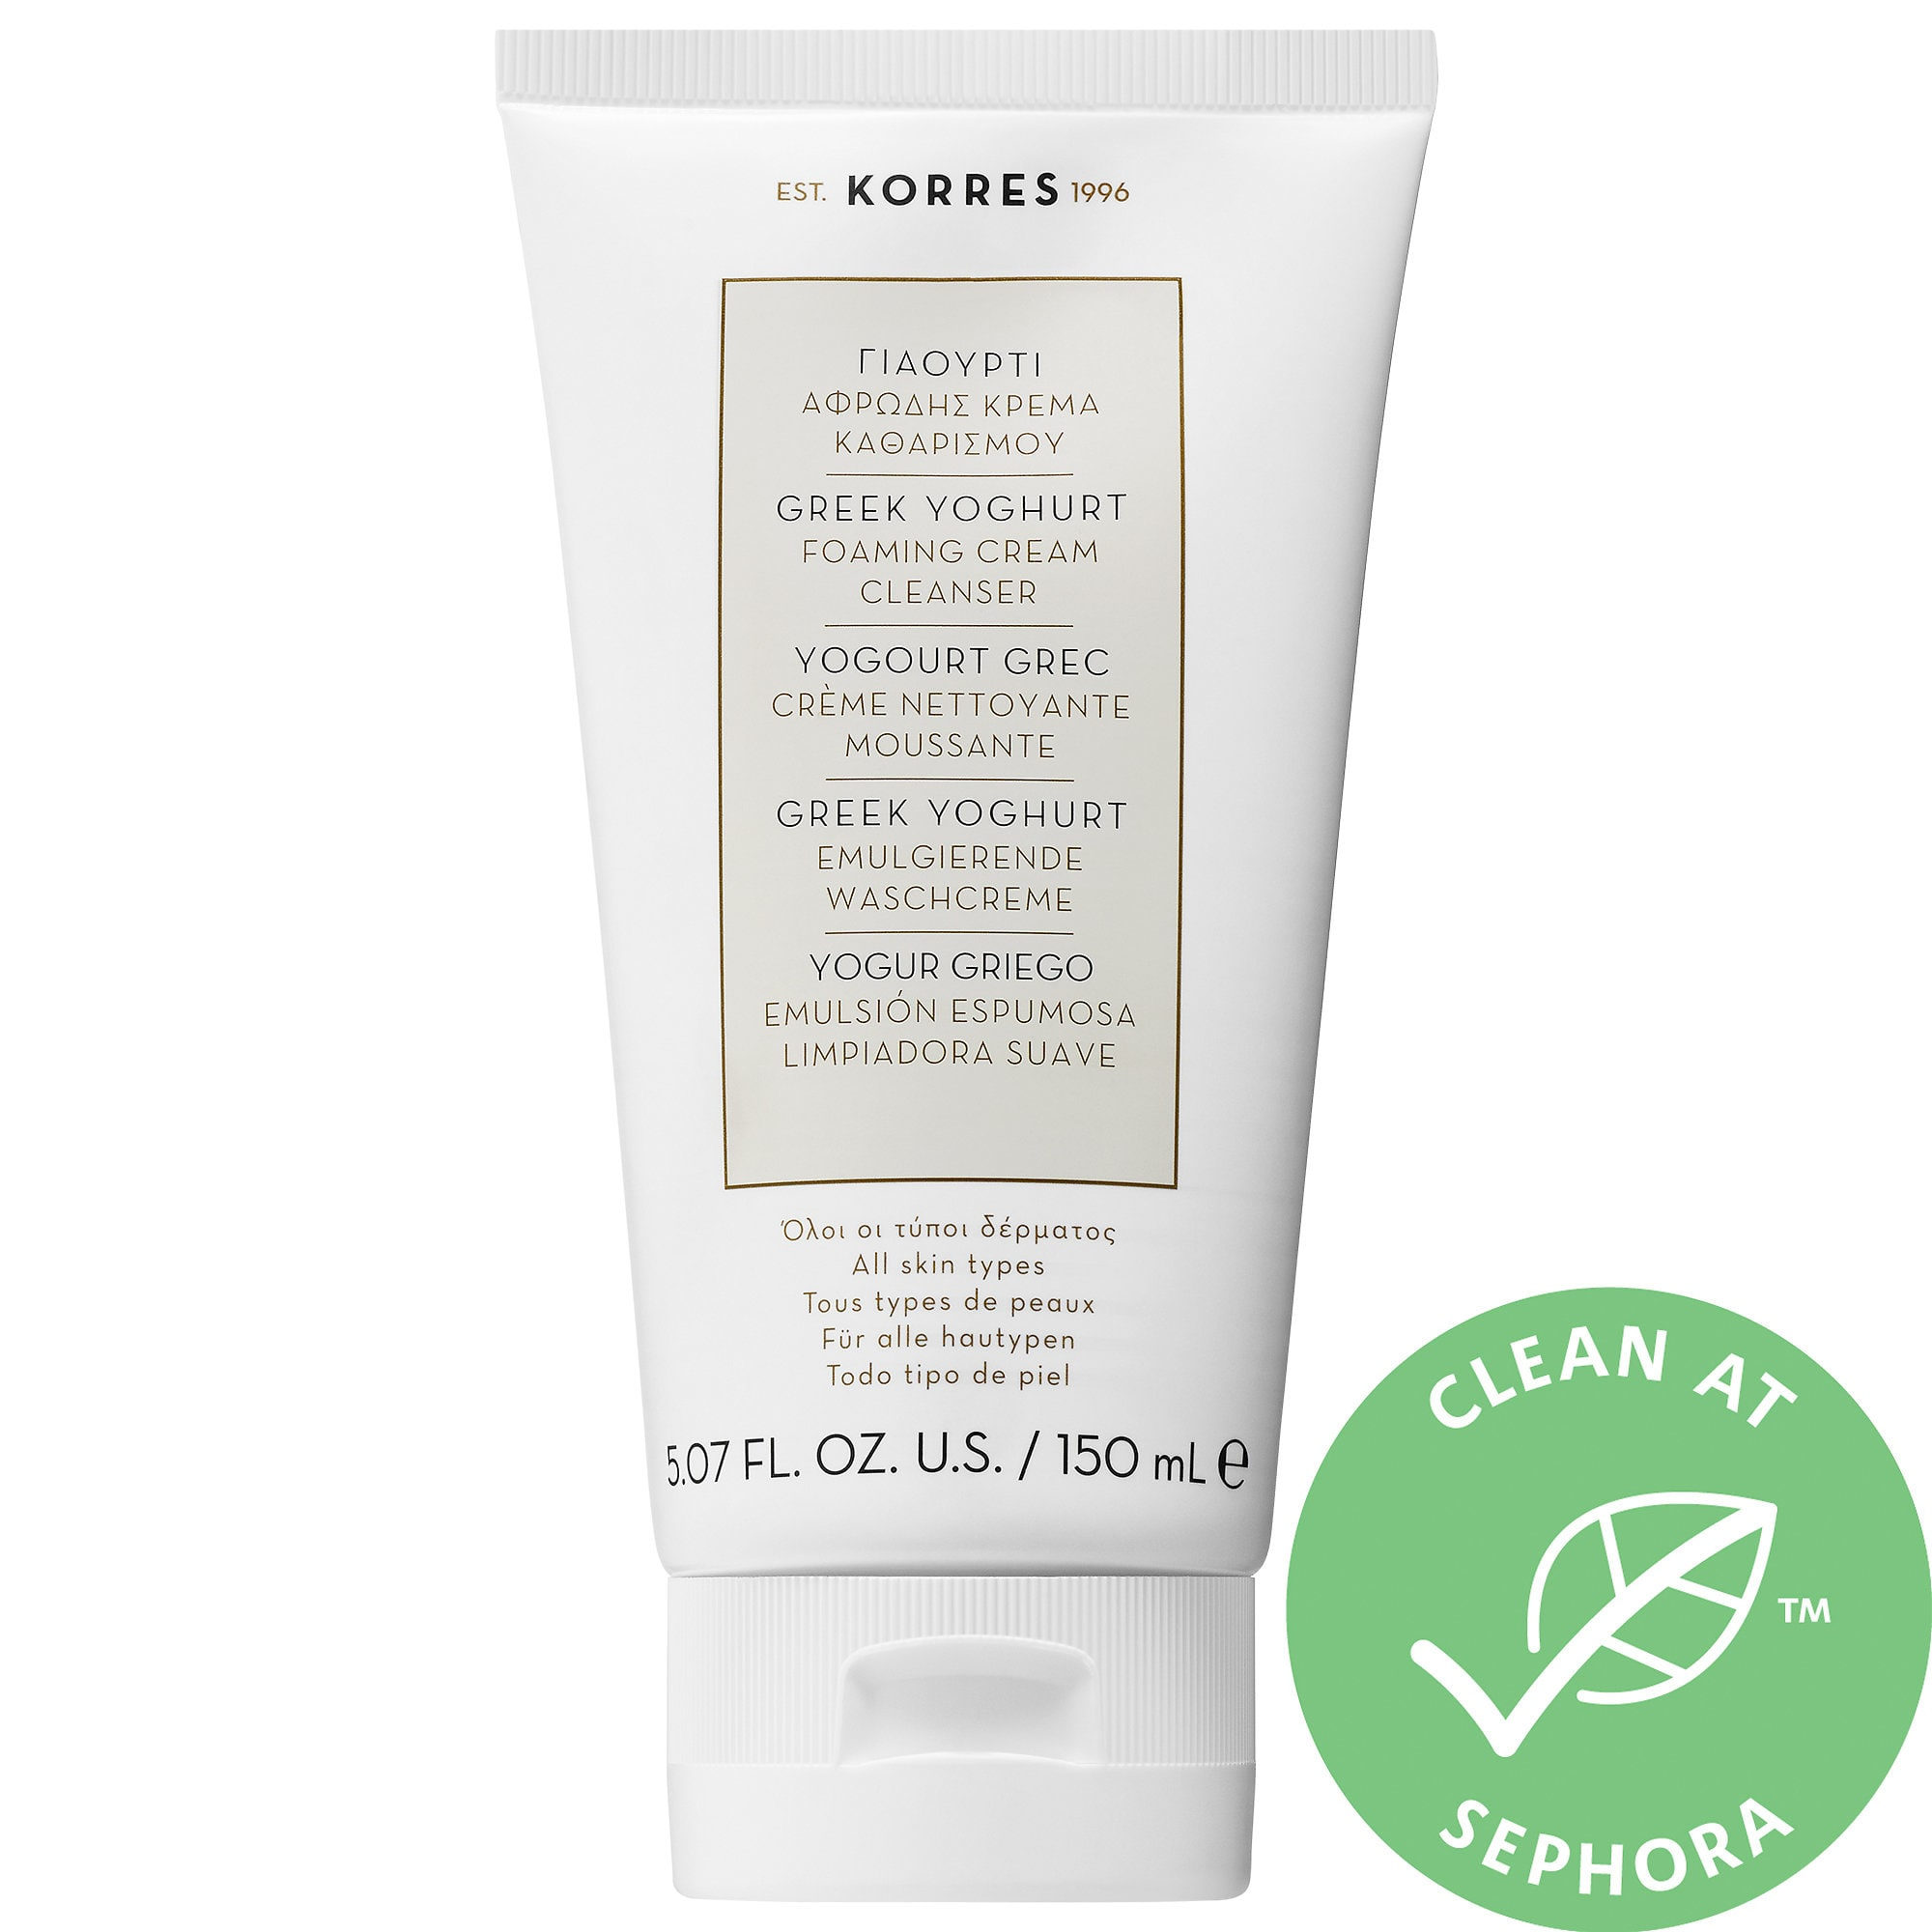 Greek Yoghurt Foaming Cream Cleanser